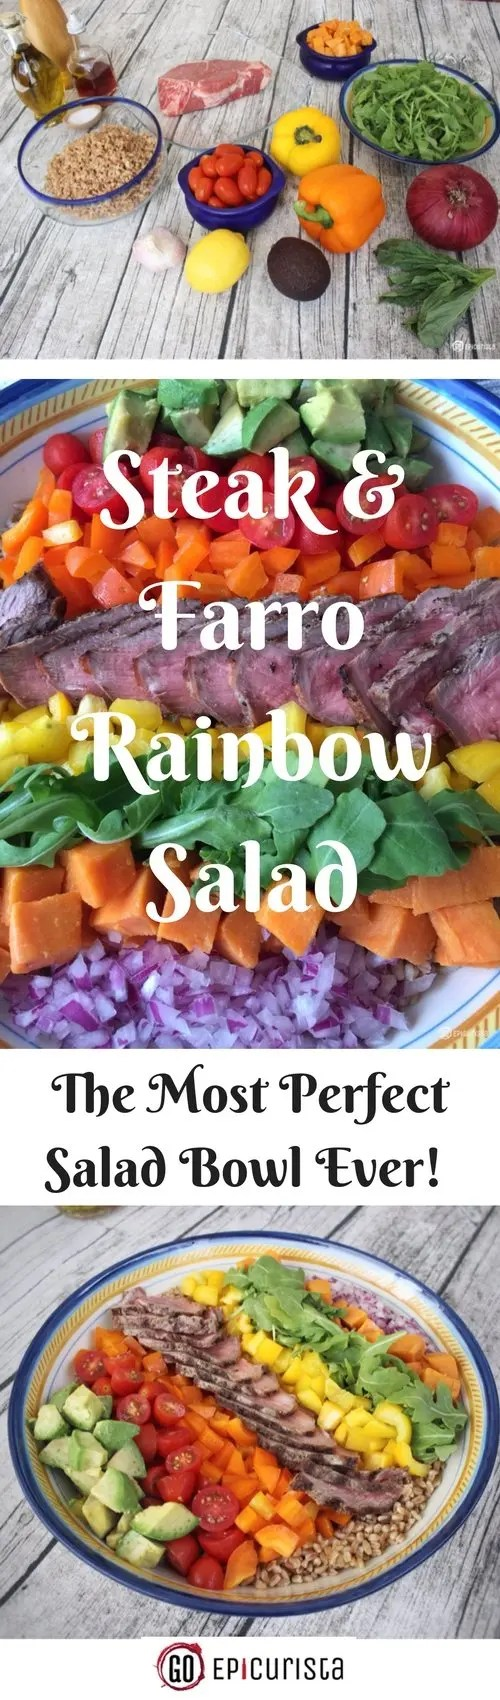 Steak and Farro Rainbow Salad with #SundaySupper by GoEpicurista.com